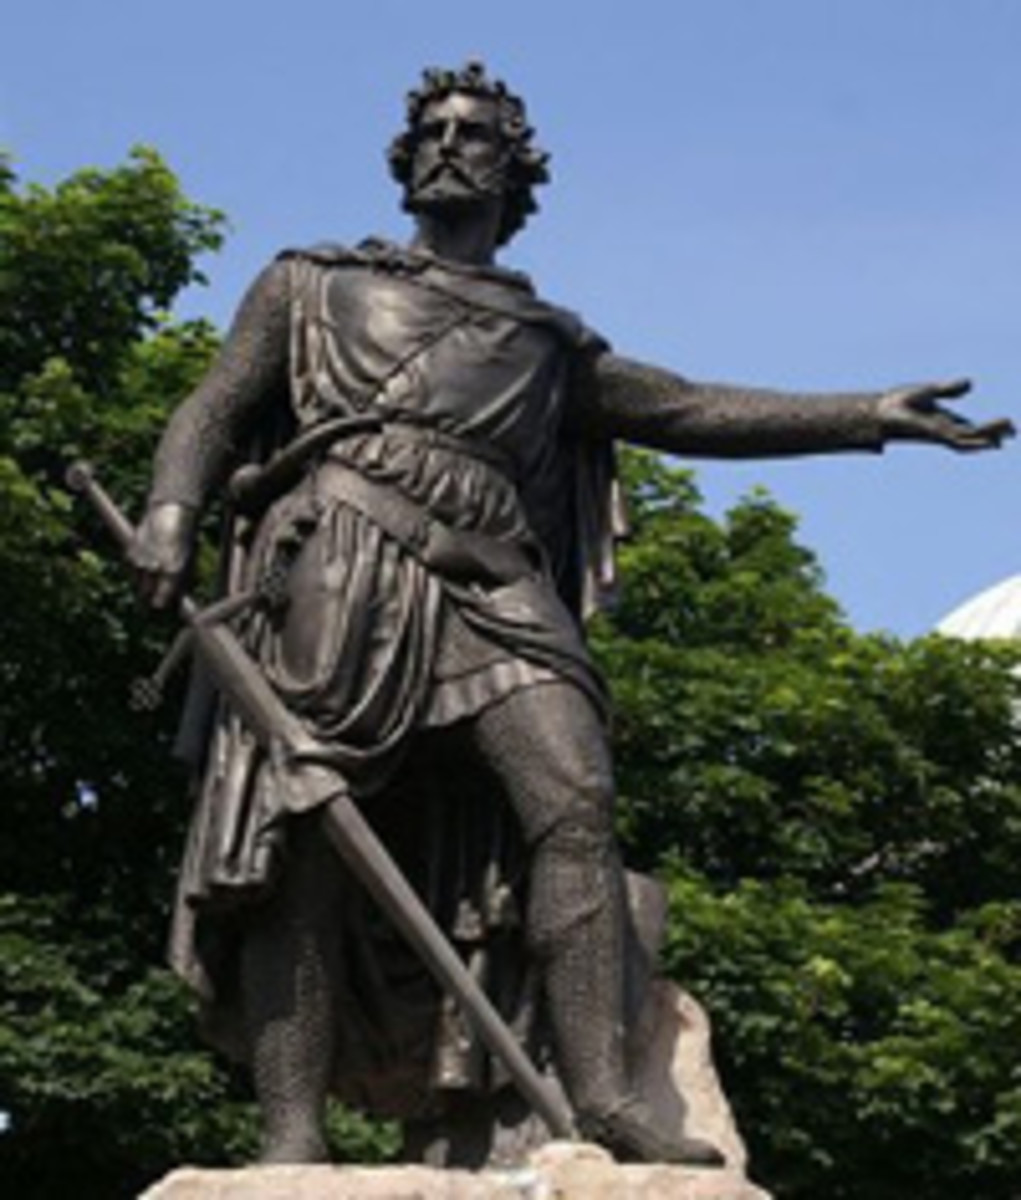 A Statue of William Wallace